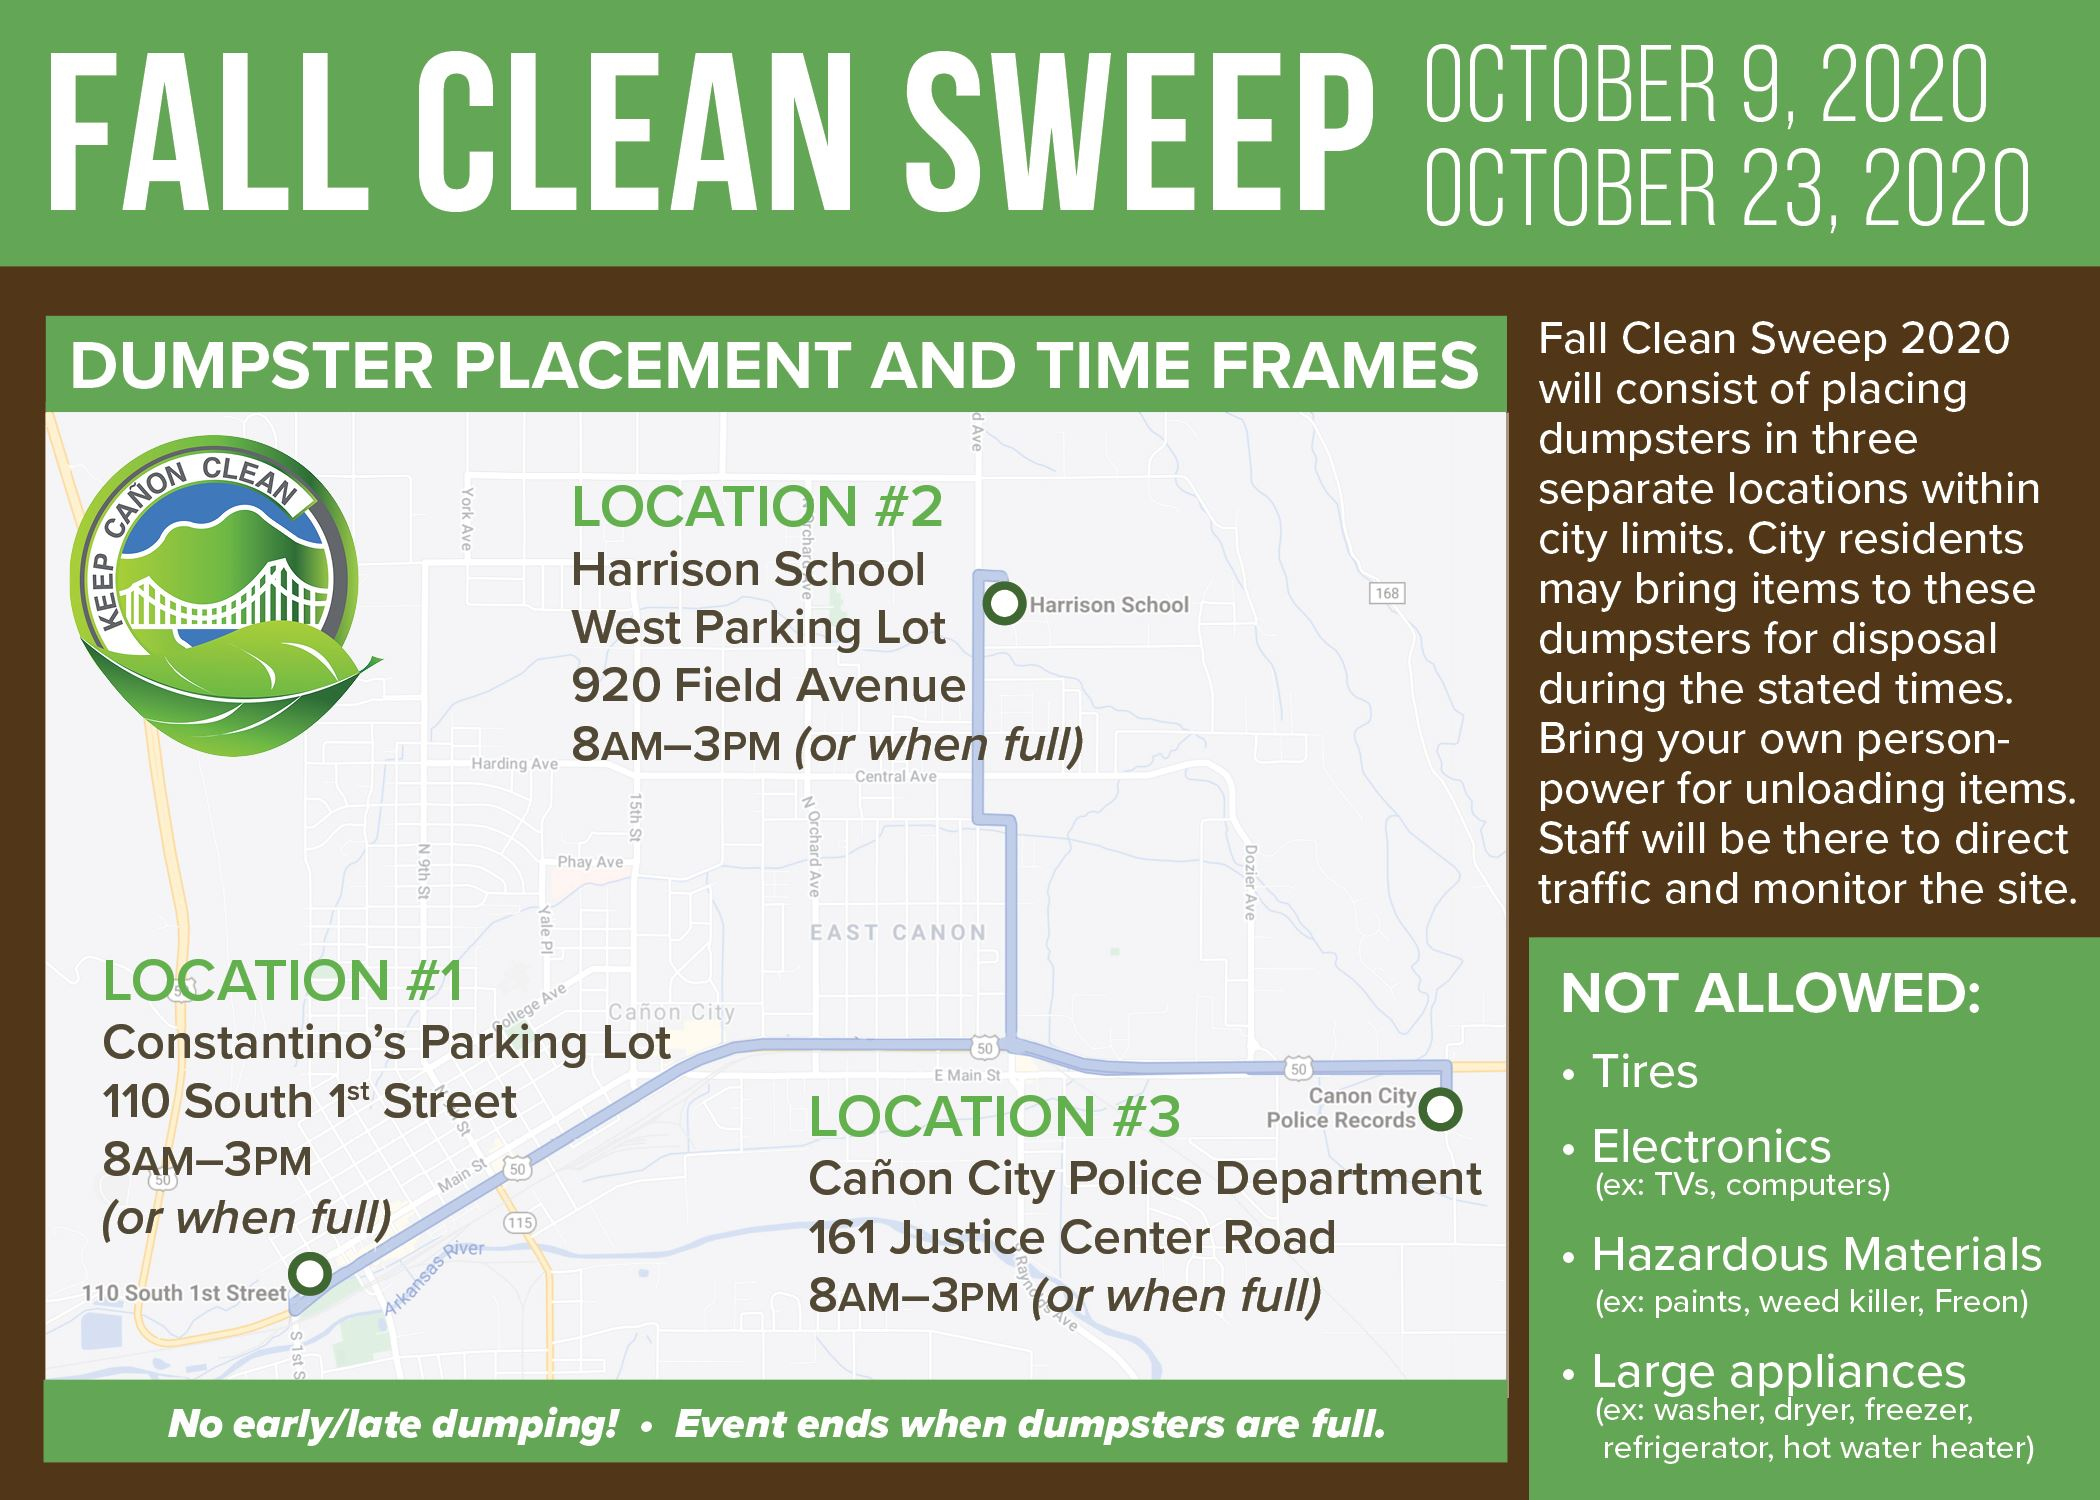 Fall Cleanup 2020 Informational